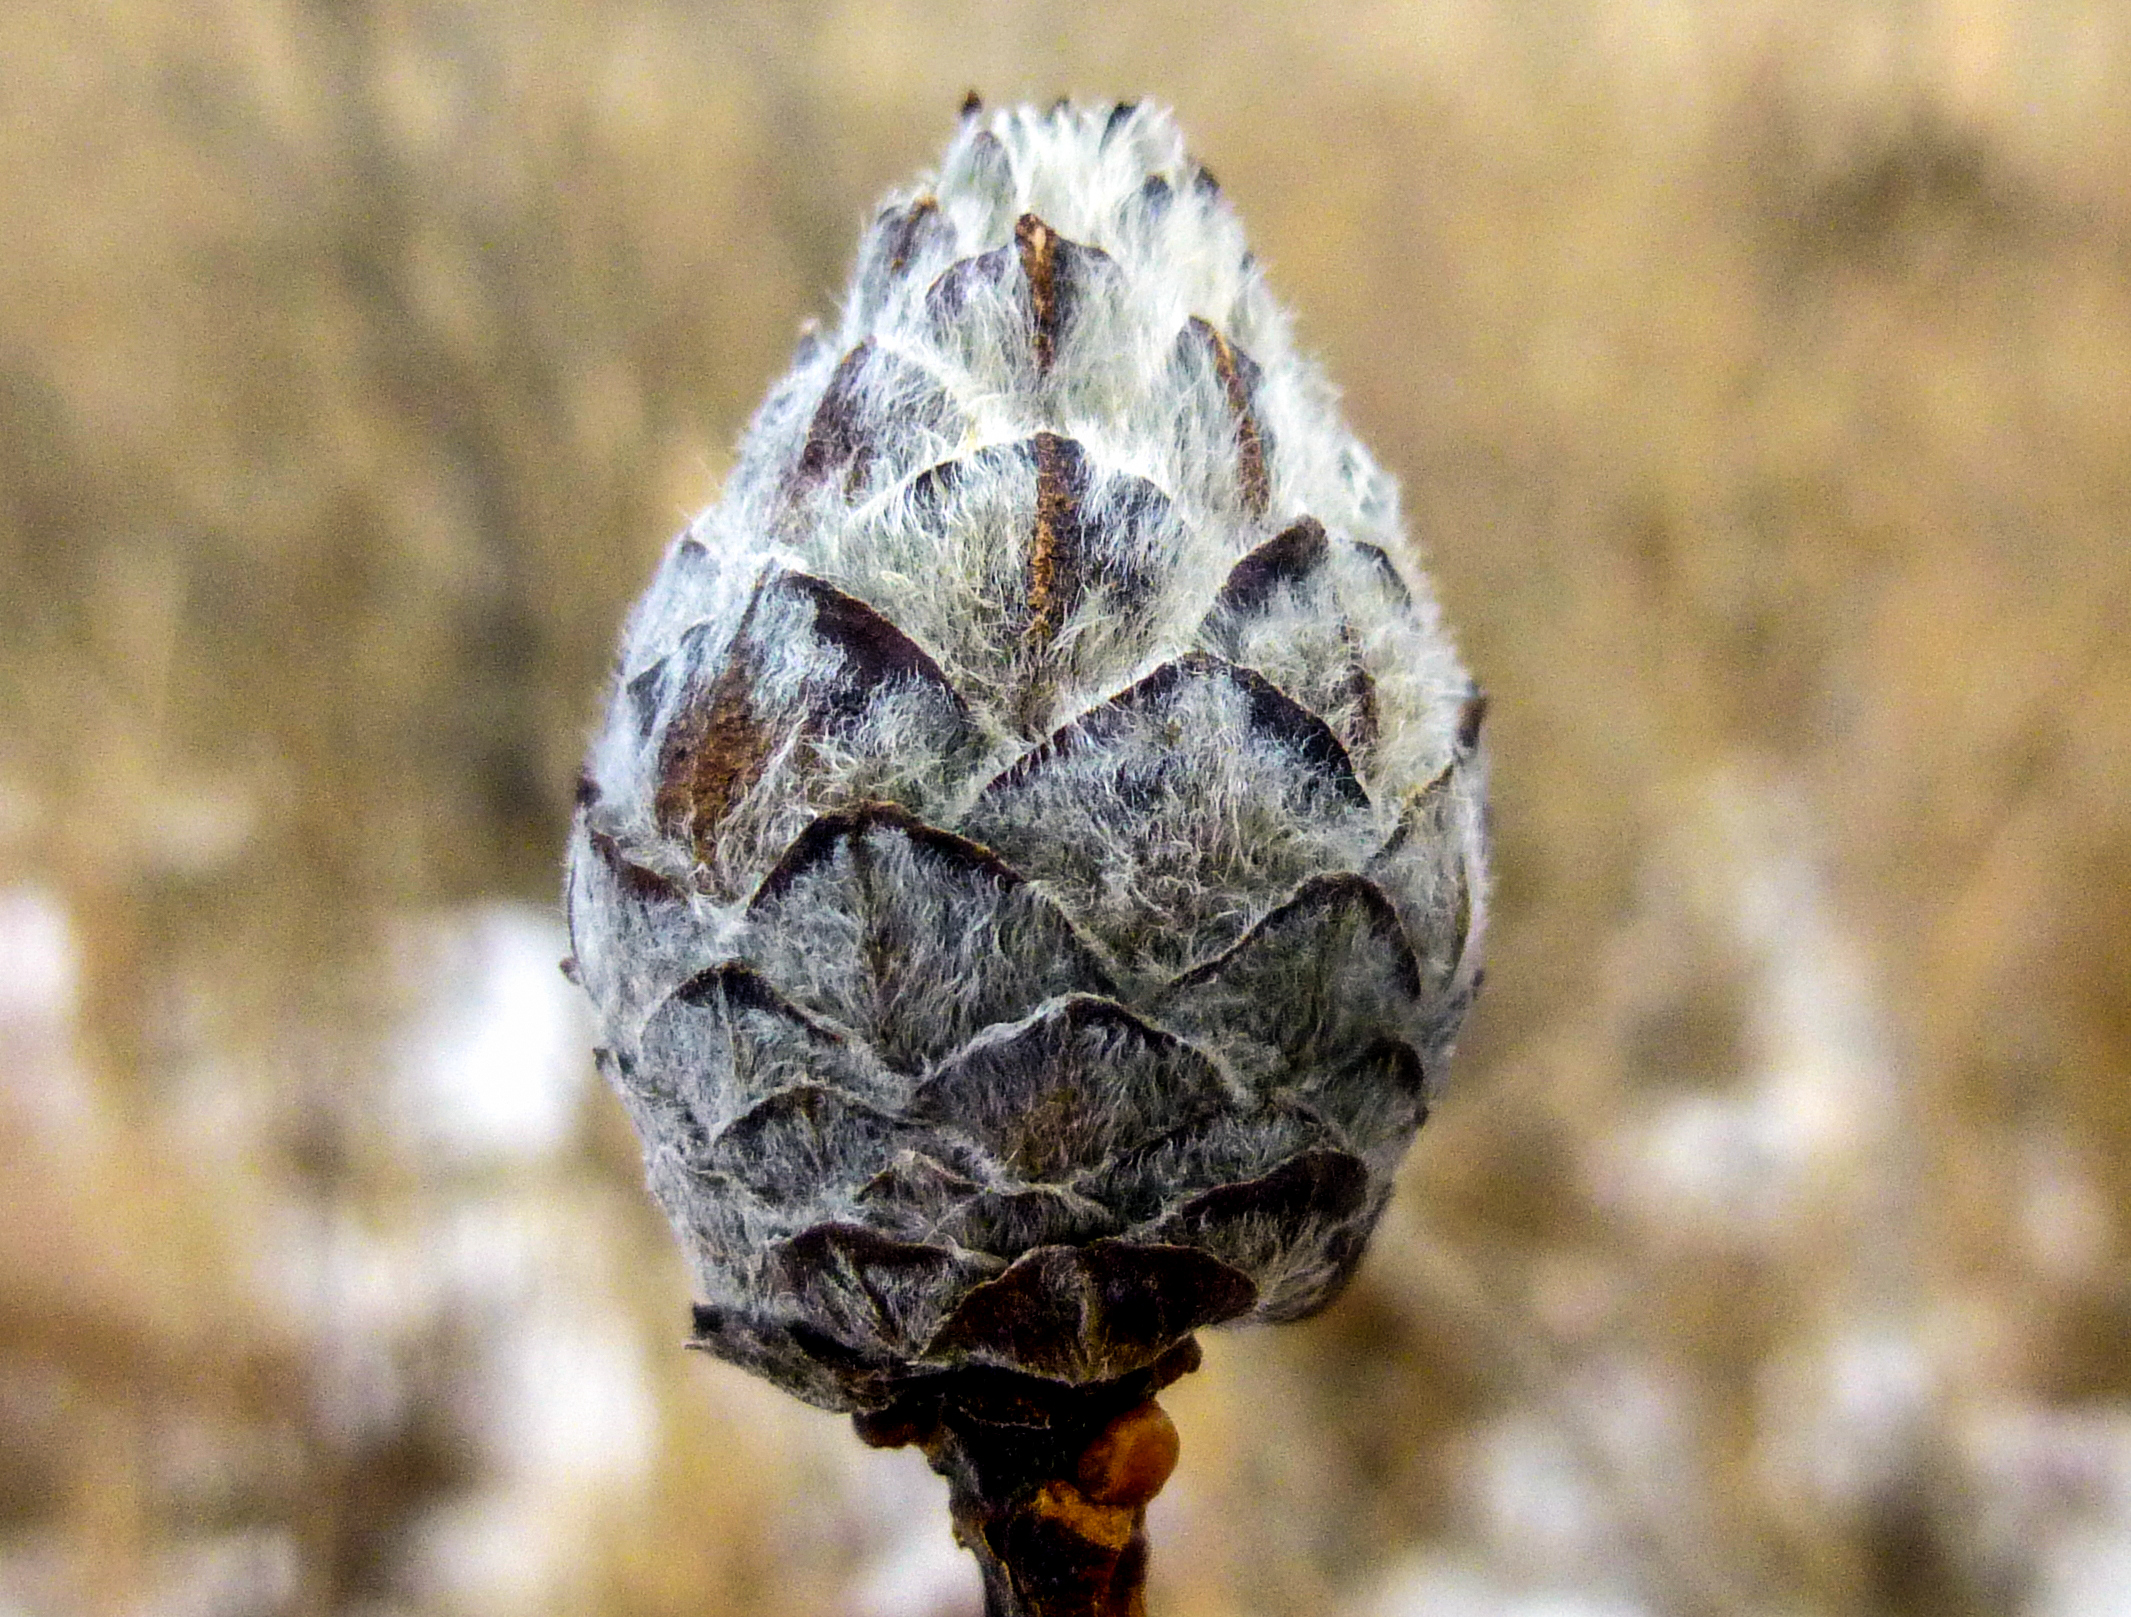 12. Pine Cone Gall on Willow